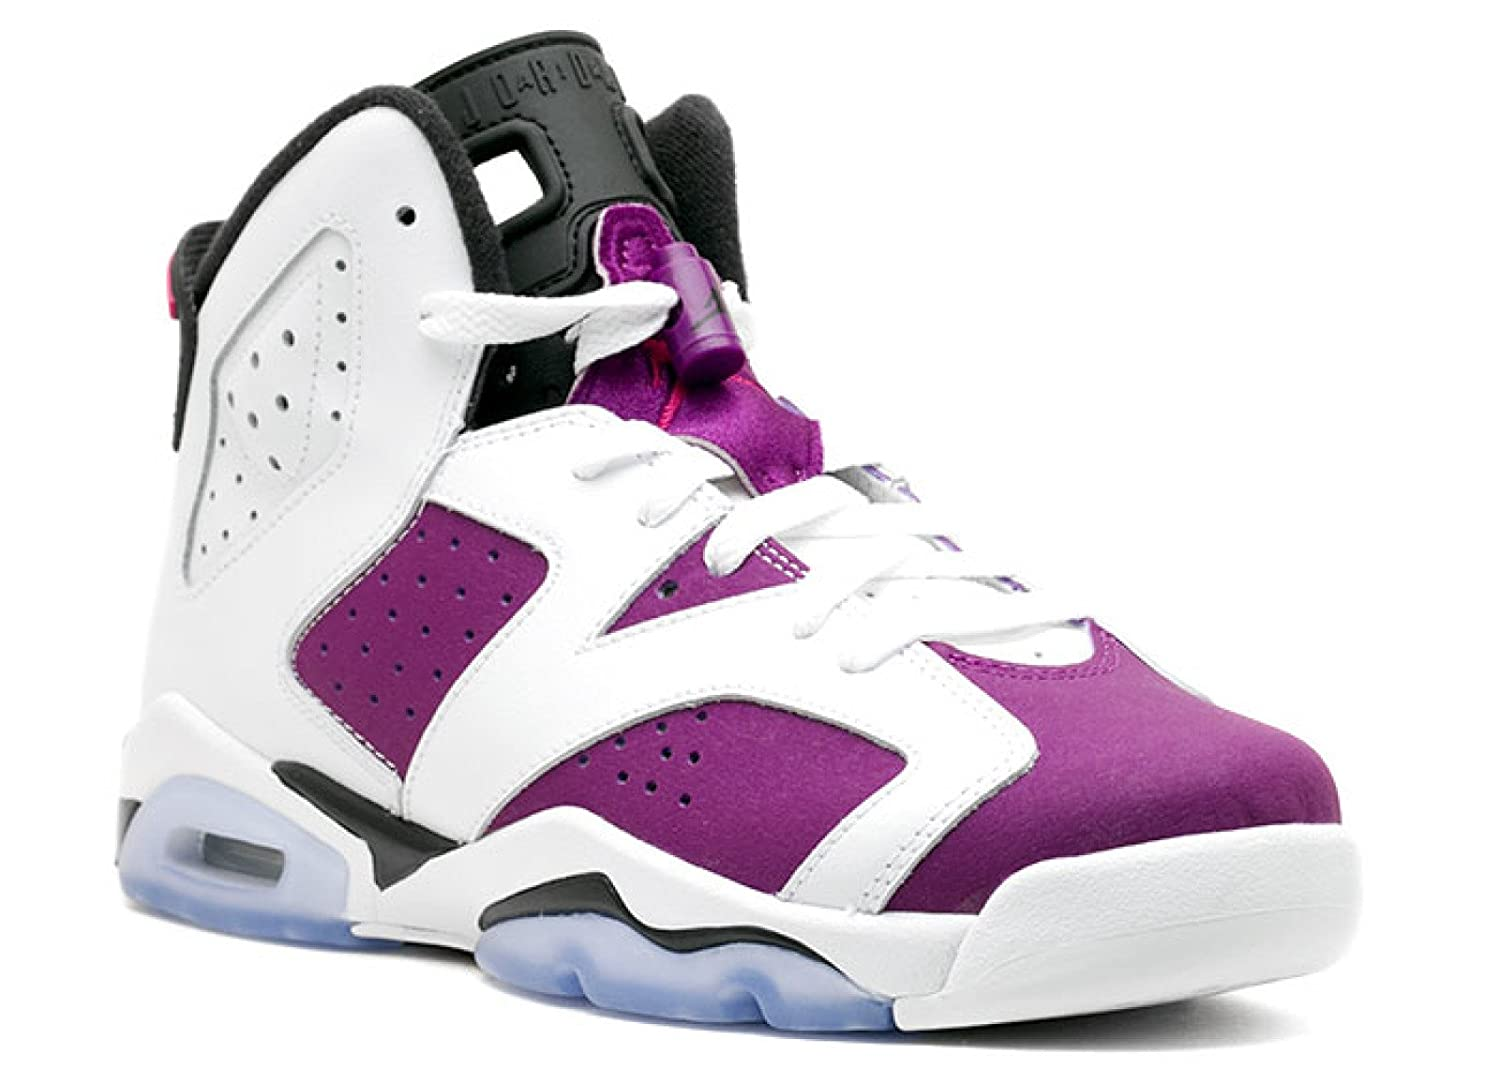 best website b71aa e832a Amazon.com   Jordan Gradeschool Girls Retro 6 (Gs) WHITE BRIGHT  GRAPE BLACK VIVID PINK 543390-127 6   Fashion Sneakers